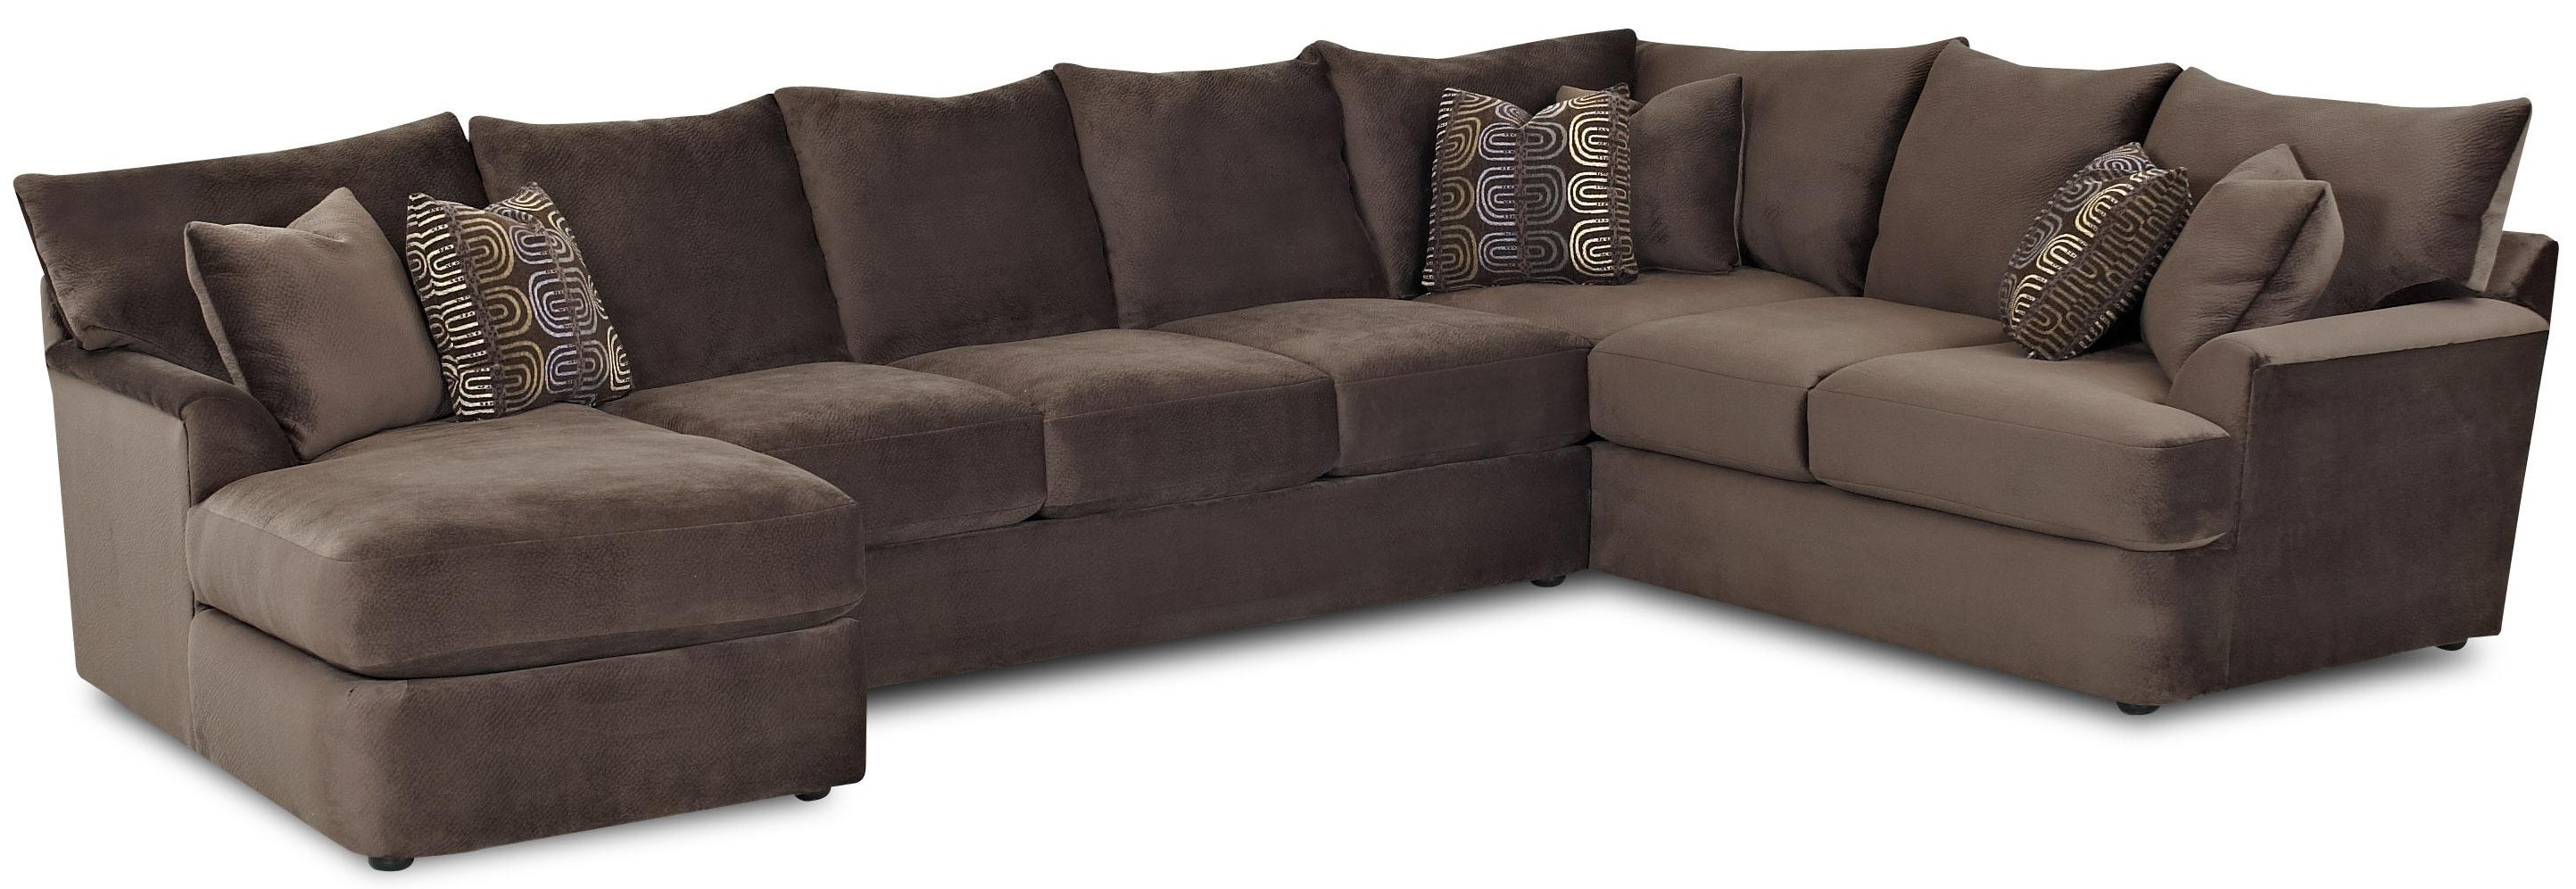 Newest Sectional Sofa Design: Best Seller L Shaped Sectional Sofas For With L Shaped Sectional Sofas (View 9 of 20)